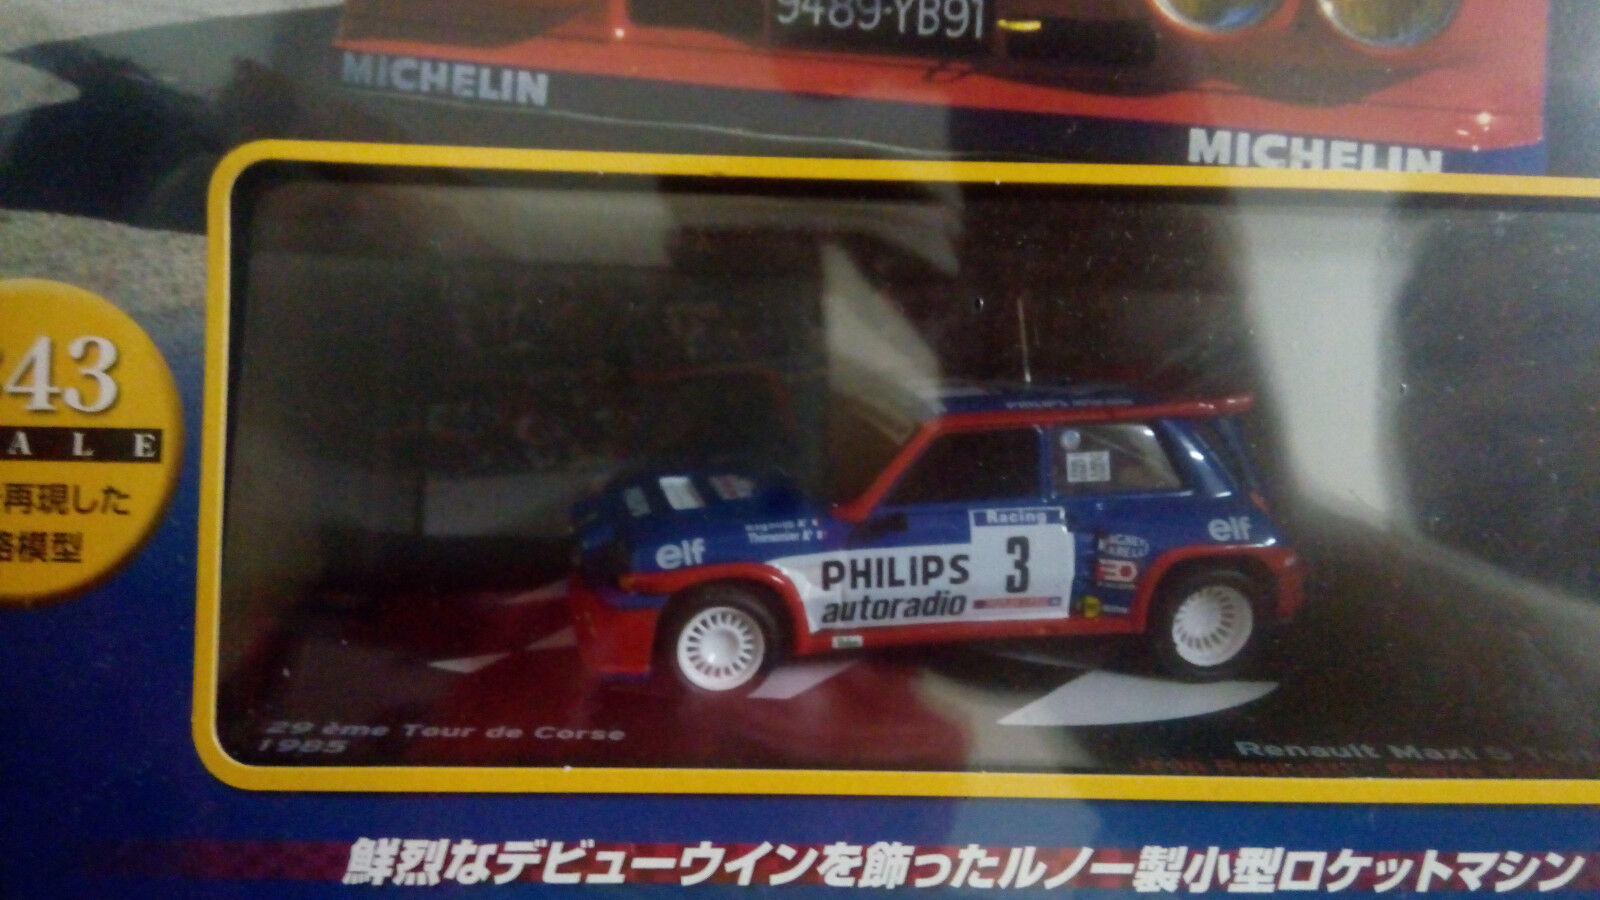 Rally car 1 43 scale Renault Maxi 5 turbo (1985) Limited edition.